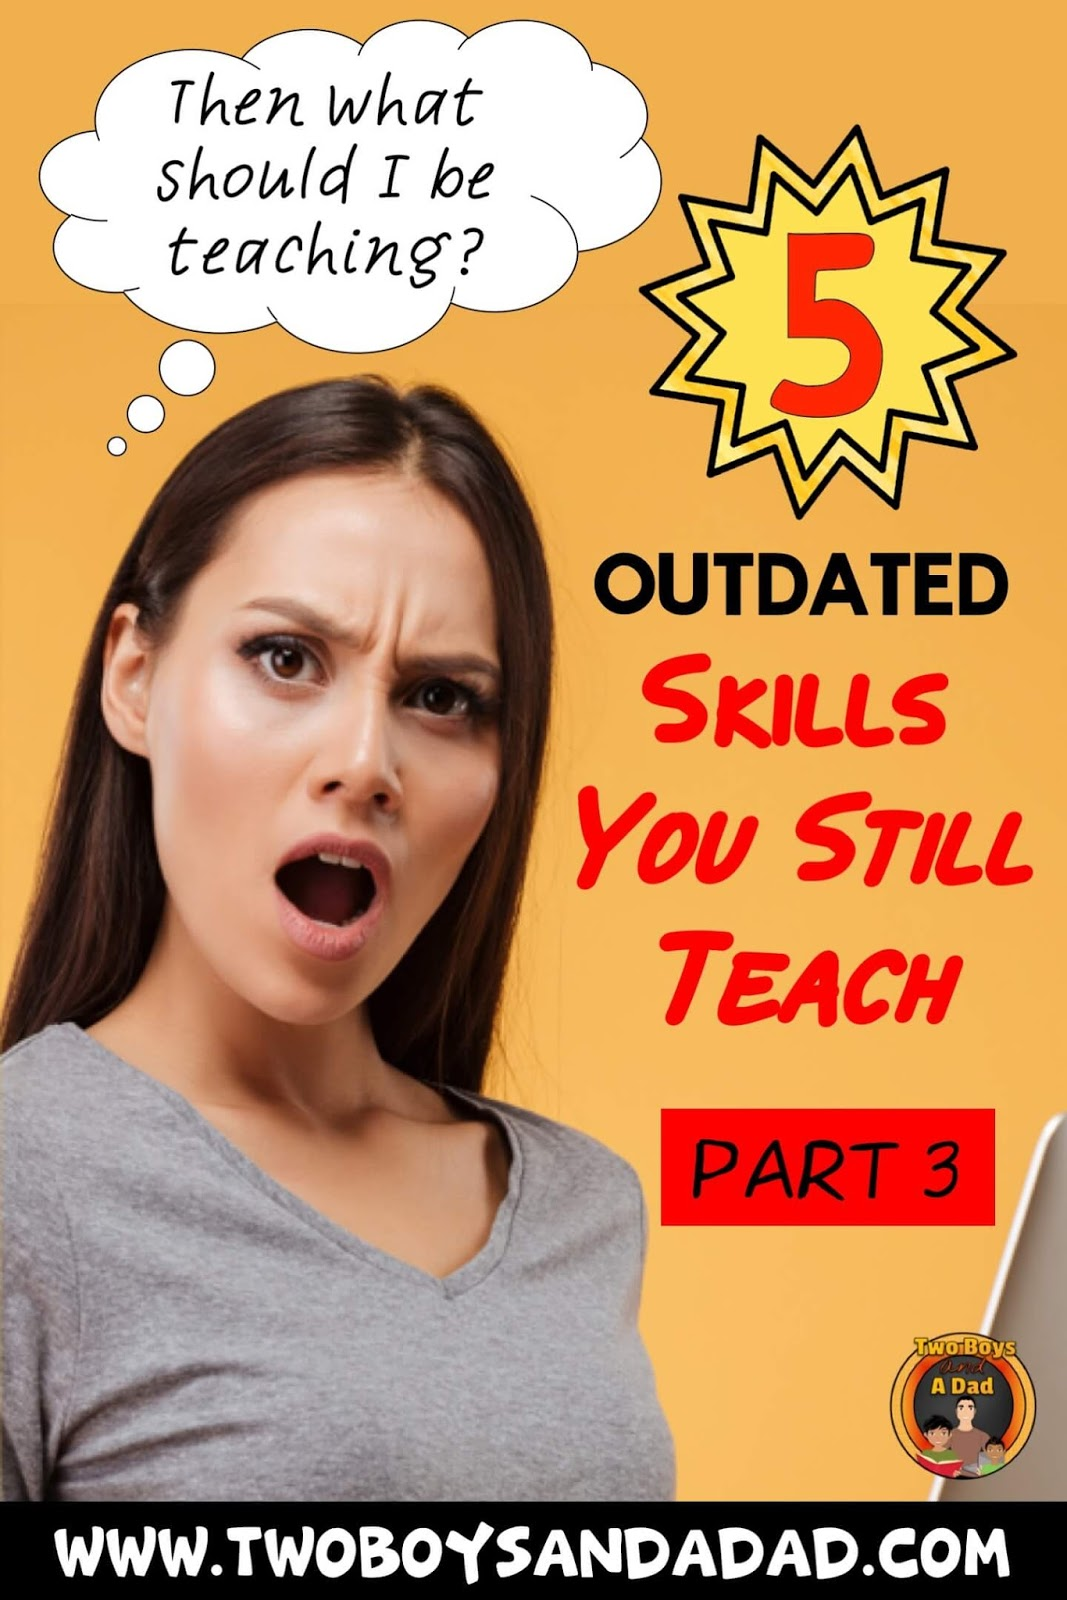 Are you teaching outdated skills?